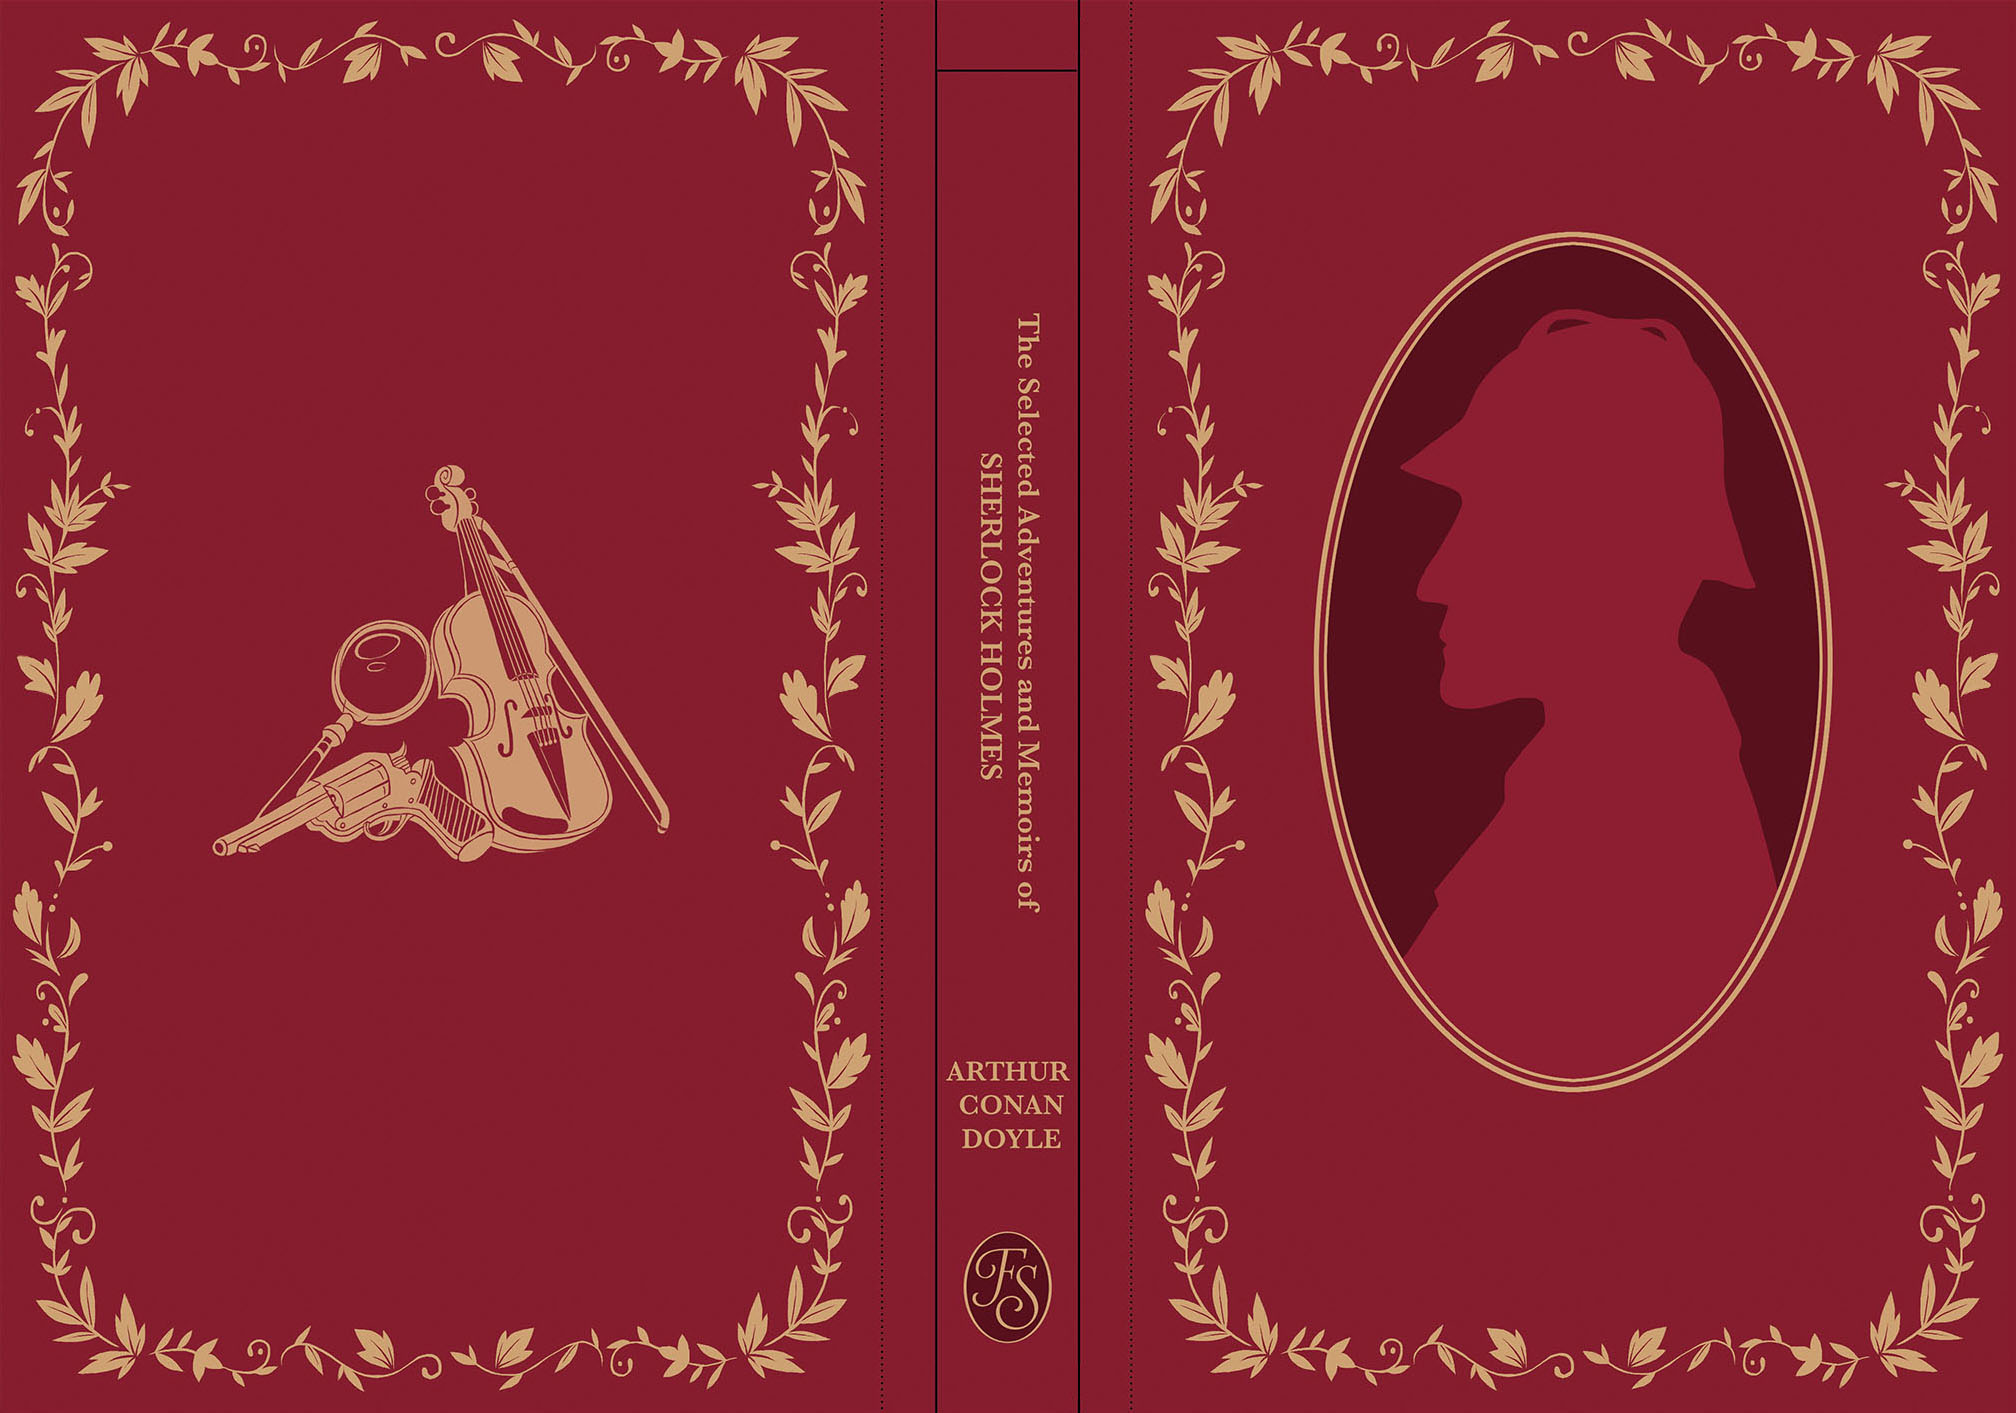 My front cover design for the Folio Society competition (2018)